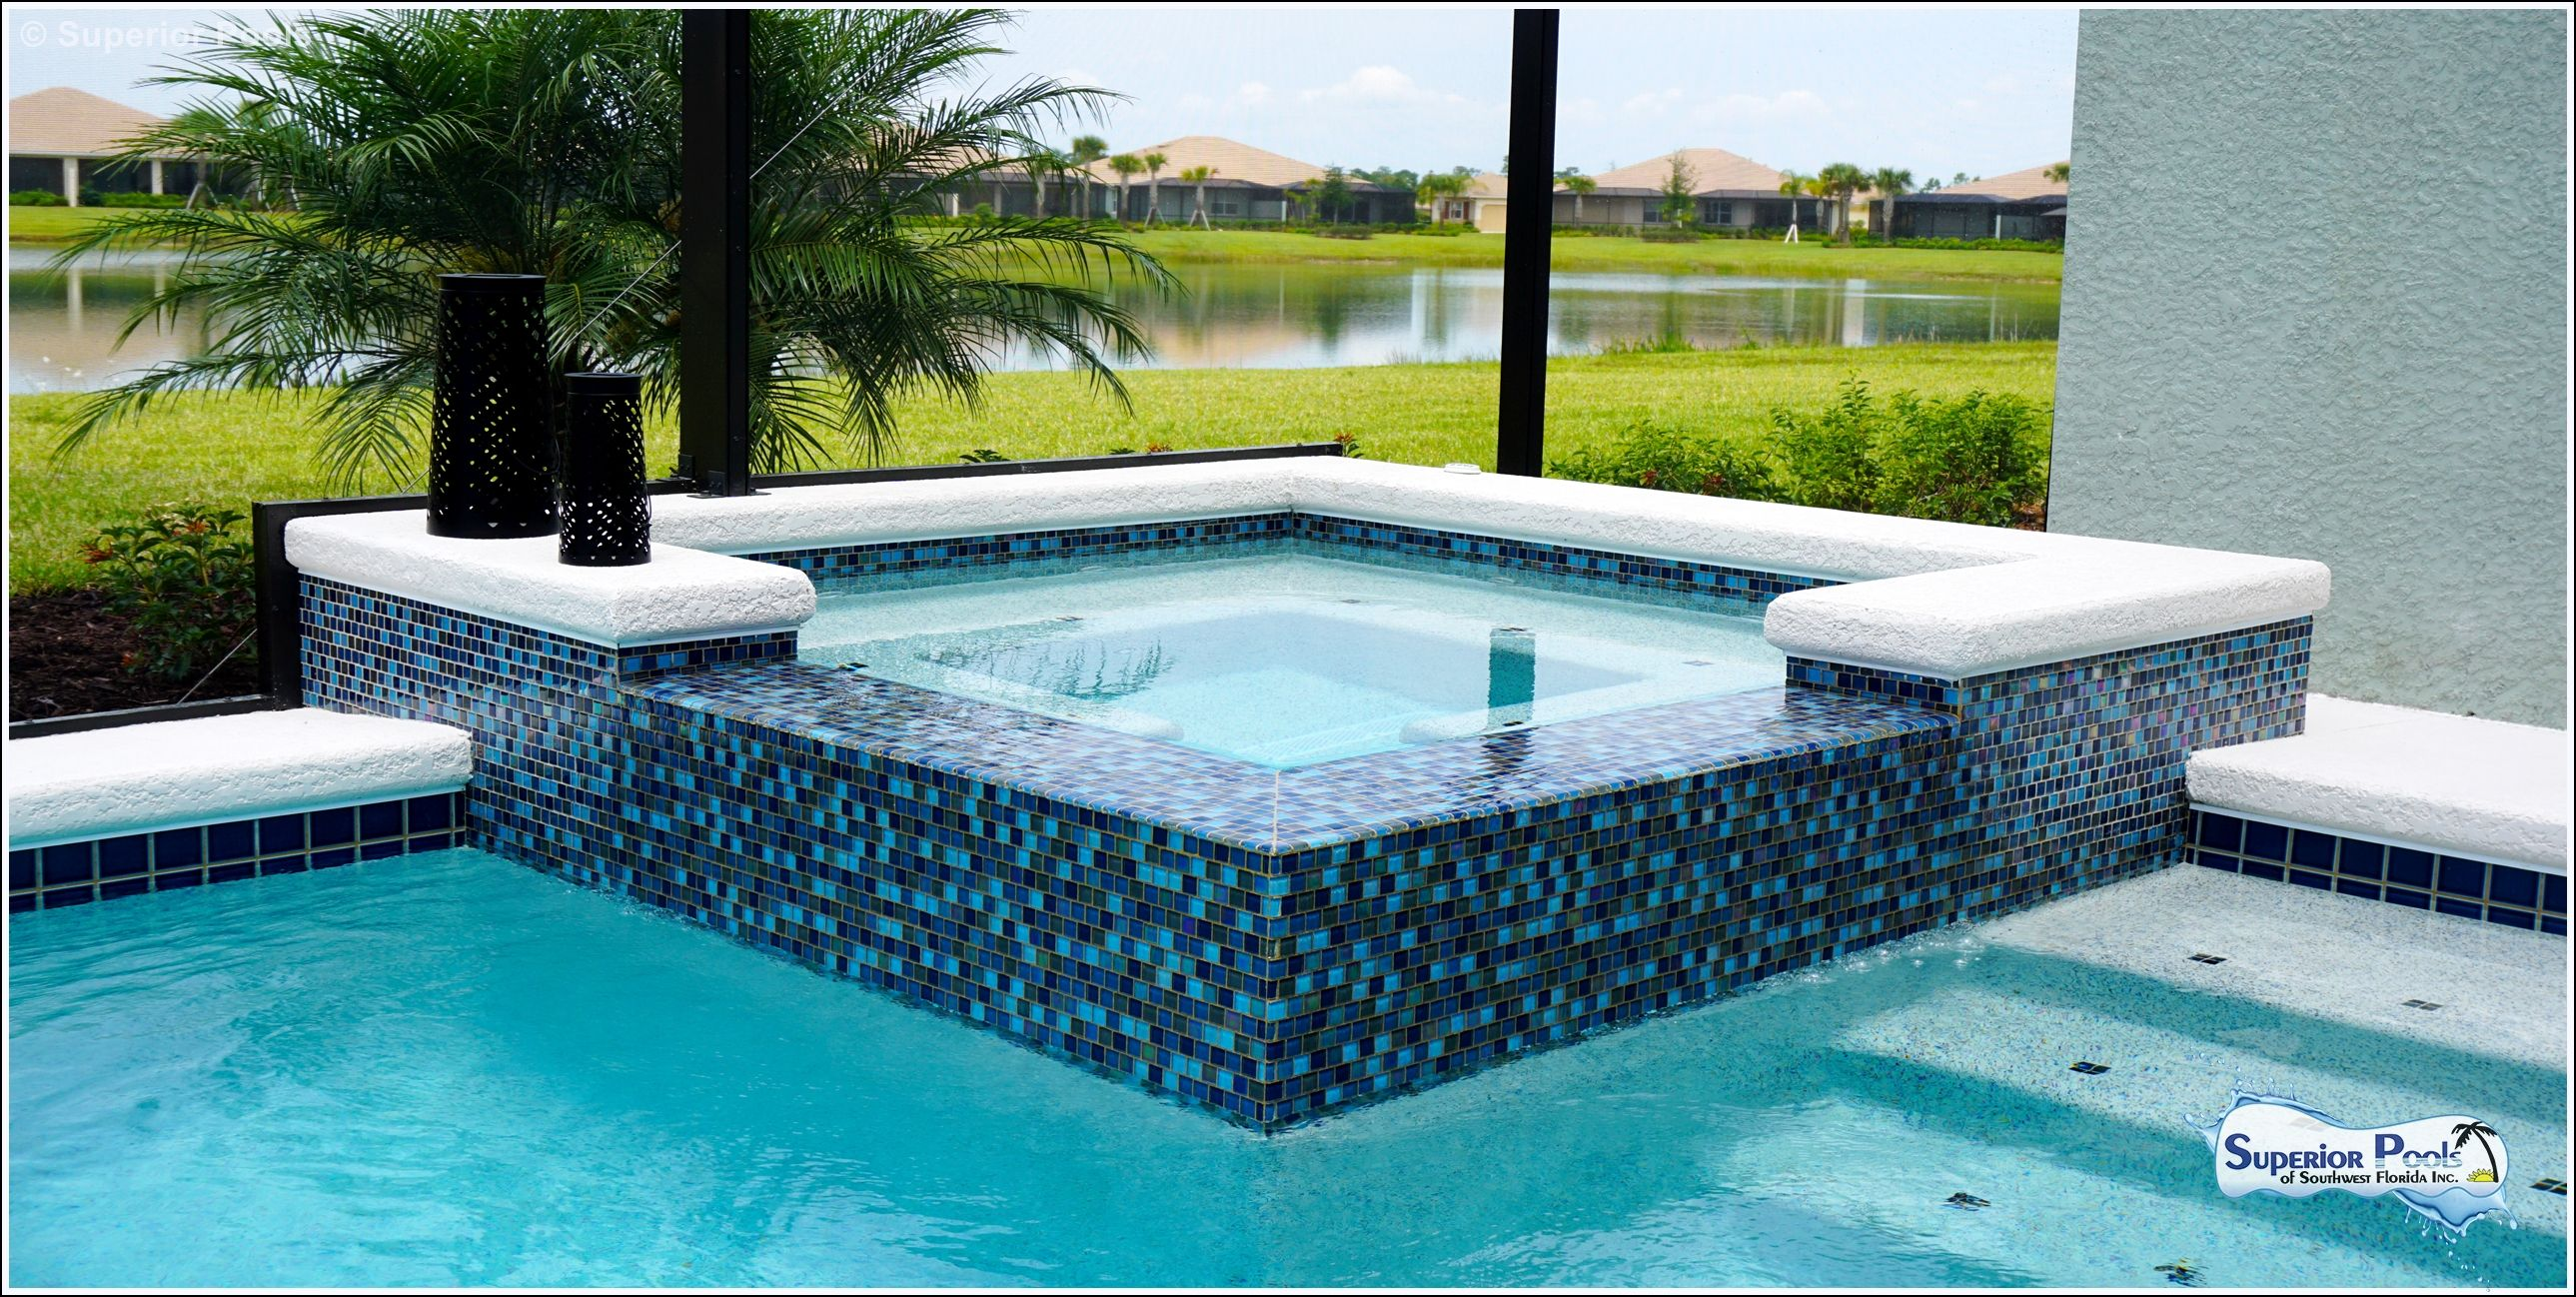 Pin by Superior Pools of SWFL, Inc. on Superior Pools 2017